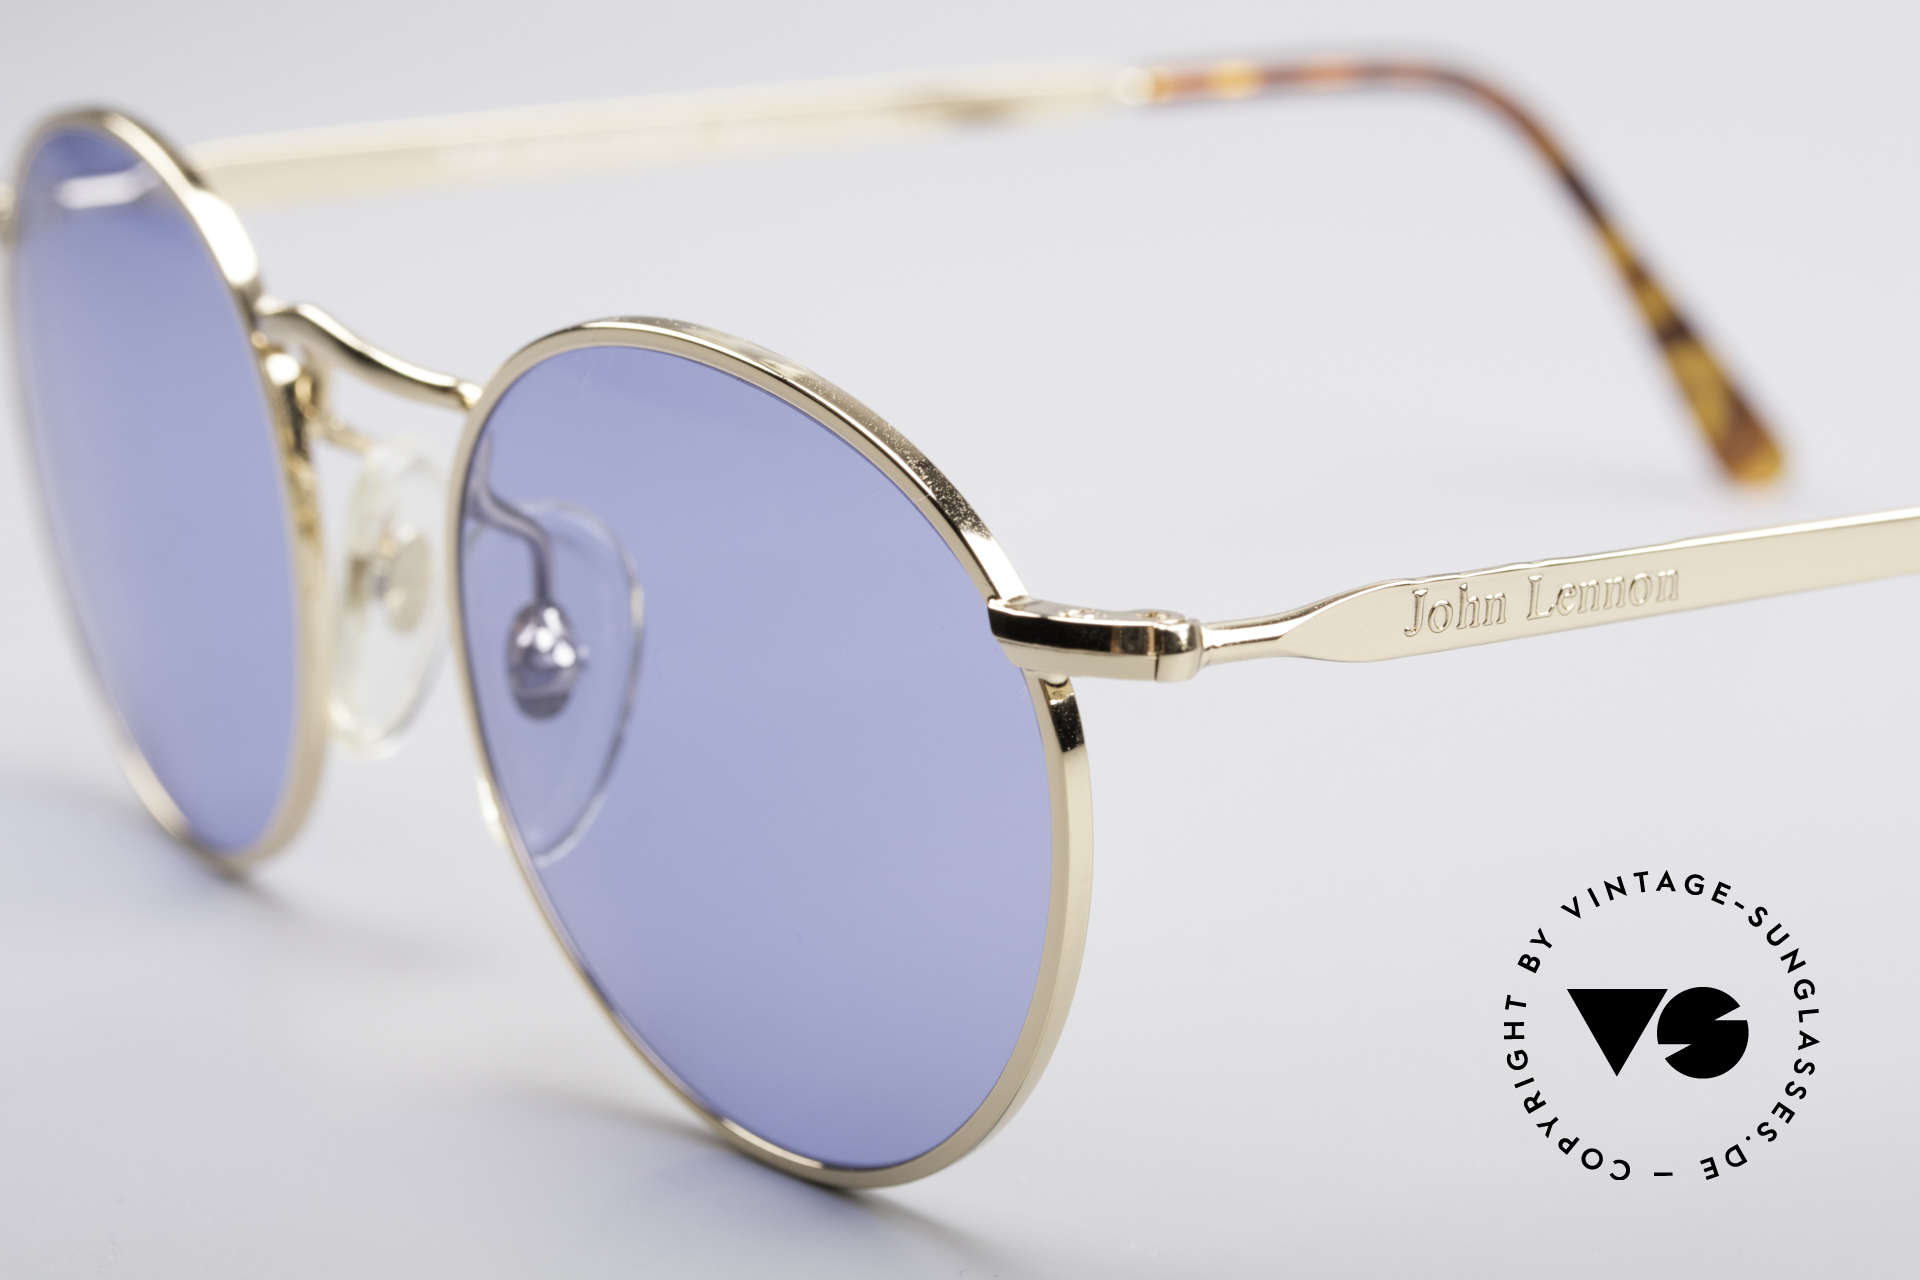 John Lennon - The Dreamer Extra Small Vintage Shades, blue sun lenses (for 100% UV protection); simply unique, Made for Men and Women